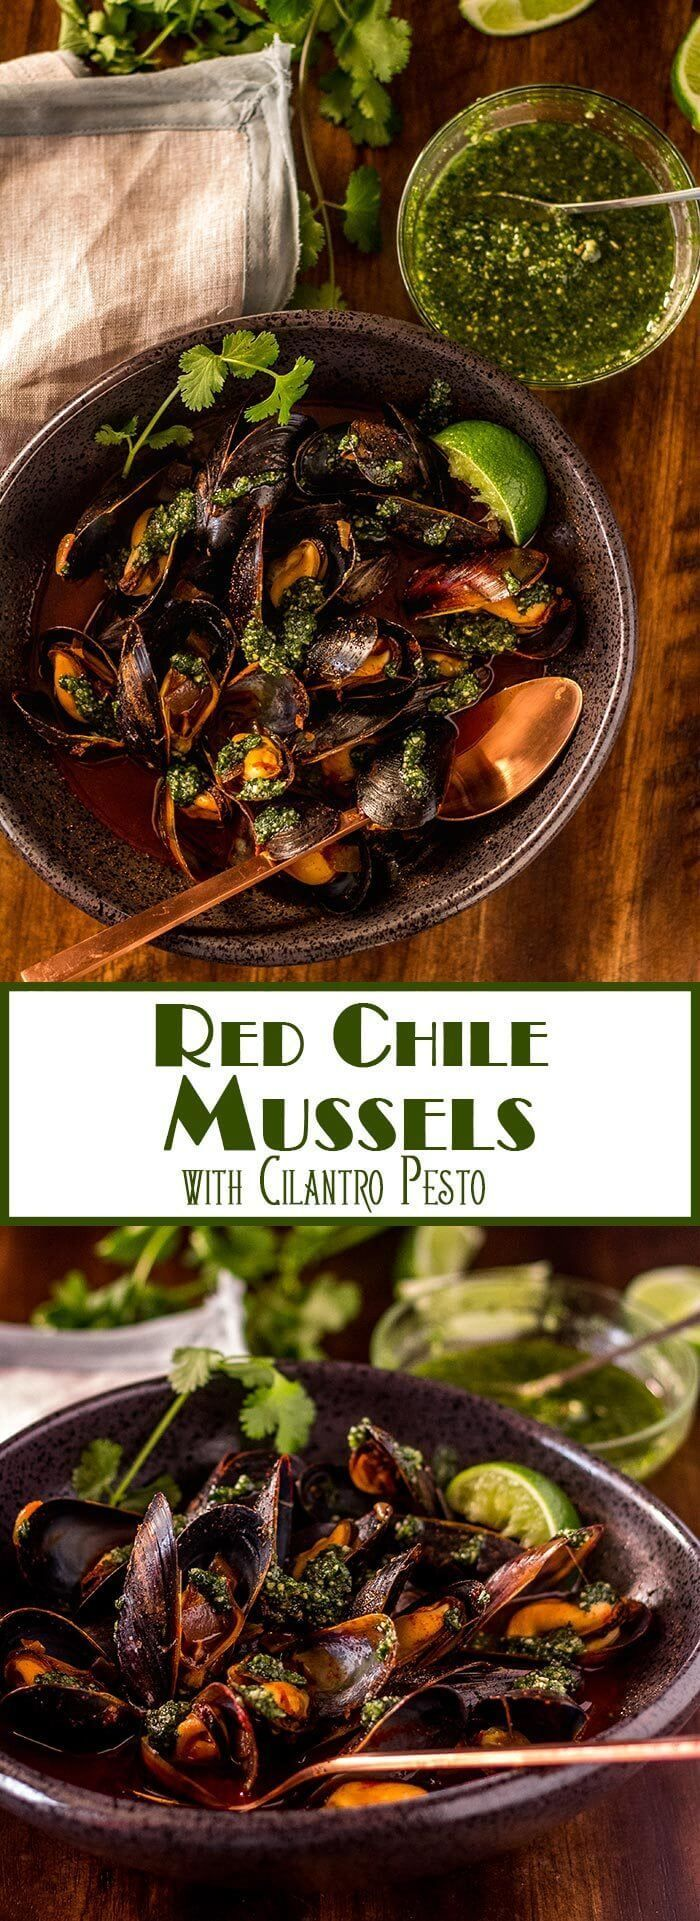 A little kick from New Mexico red chile powder sets my Red Chile Mussels with Cilantro Pesto apart from all the rest... finished with a vibrant cilantro pesto, they're sure to be a new favorite for bivalve lovers! Mussels | Seafood Recipes | Quick Seafood | NM Red Chile | Main Dishes | Gluten Free Mains via @TamaraBMS